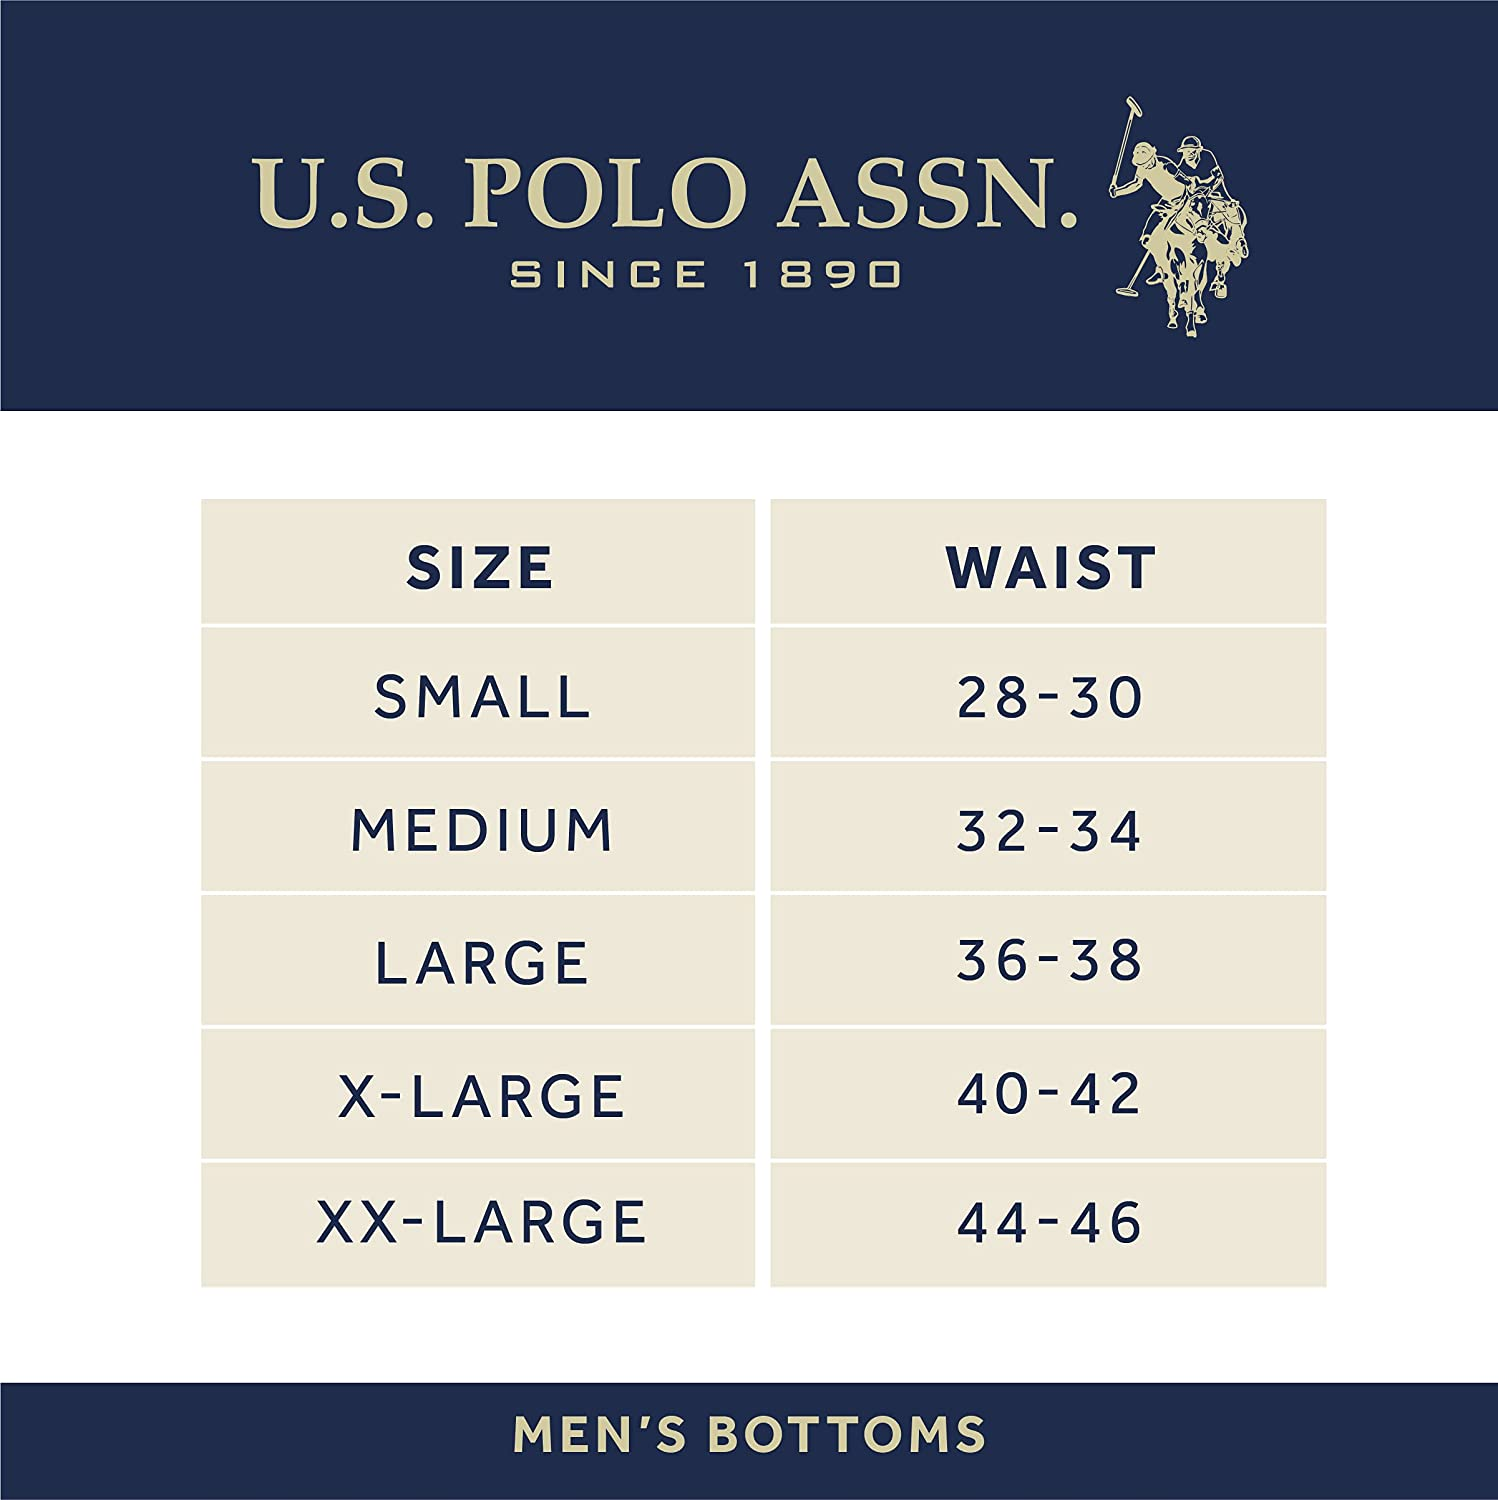 U.S. Polo Assn. Men's Cotton Stretch Boxer Briefs with Comfort Pouch (4 Pack)